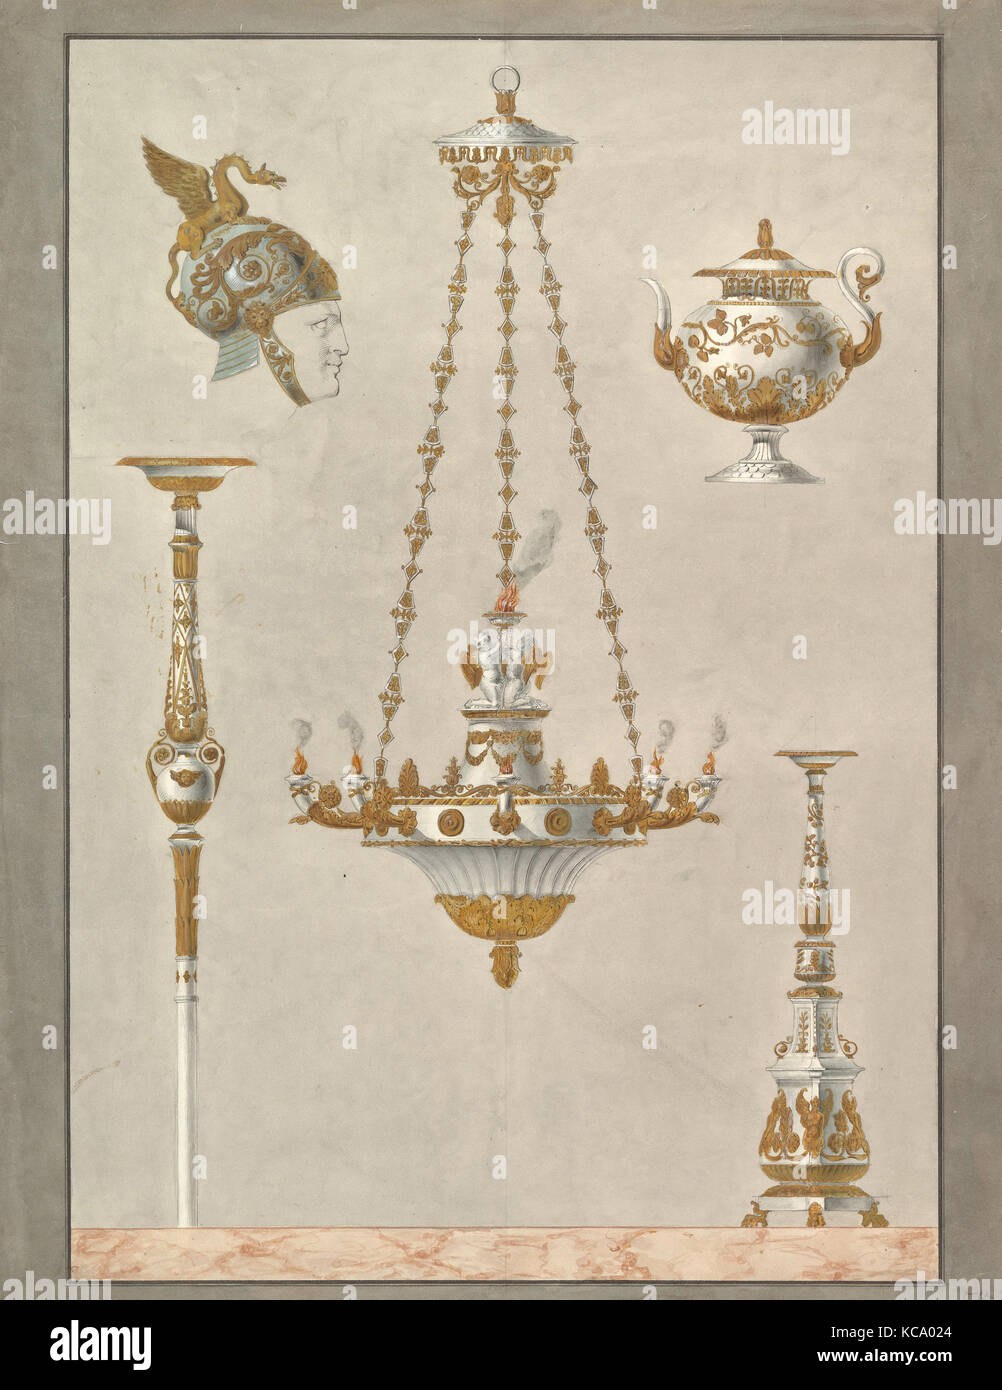 Designs for Metalwork, Anonymous, Italian, 19th century, 19th century - Stock Image